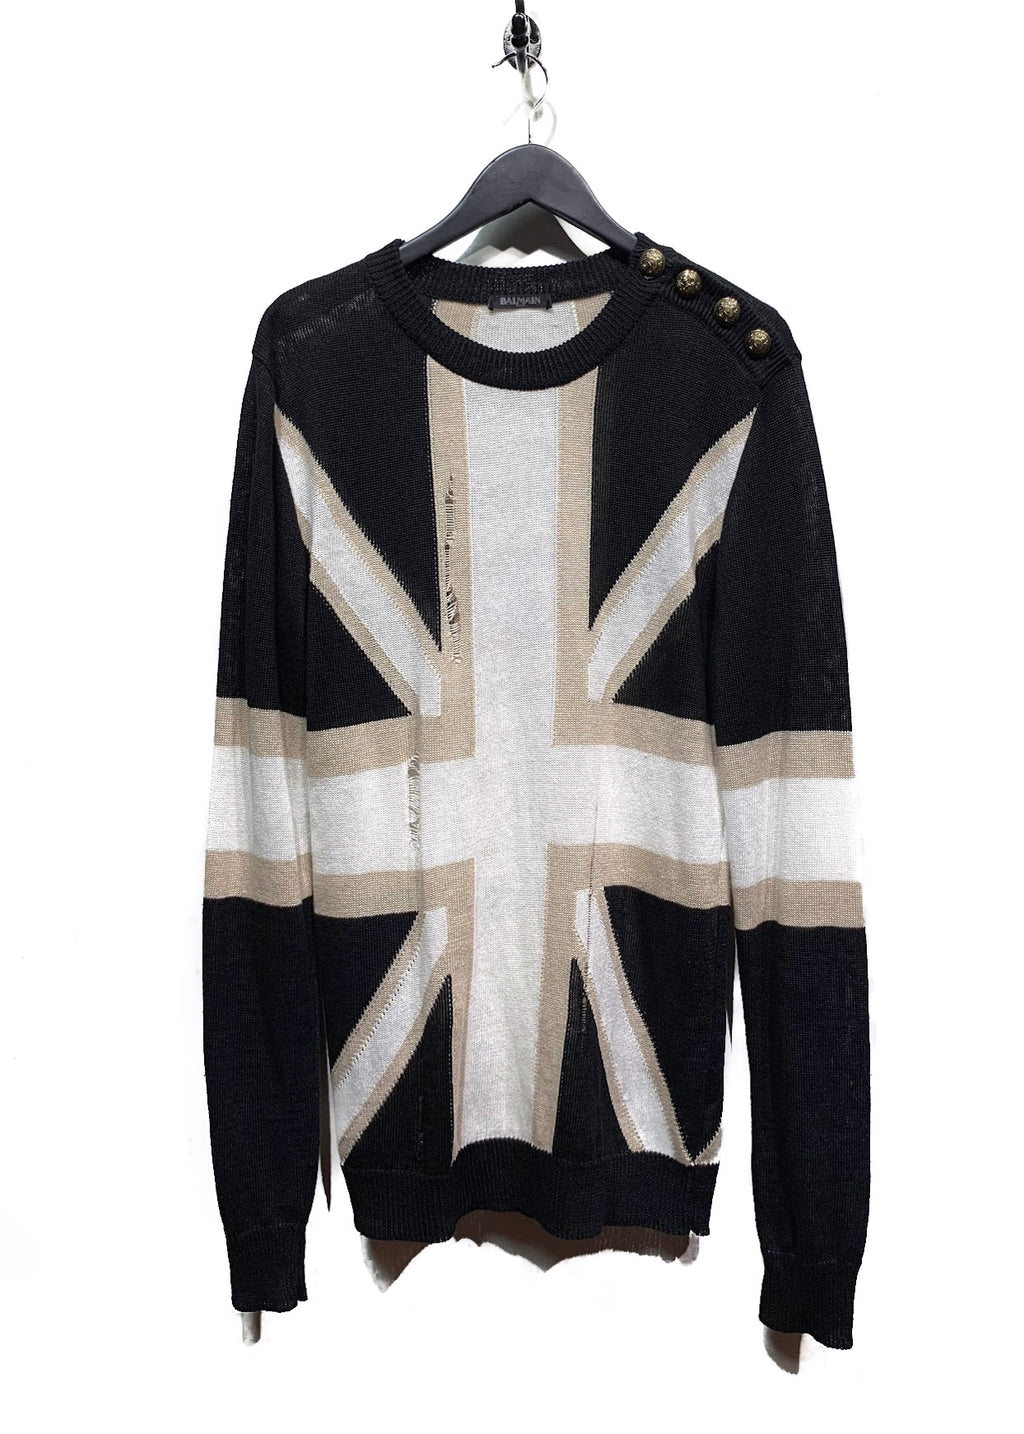 Balmain SS16 Black Union Jack Distressed Knit Sweater